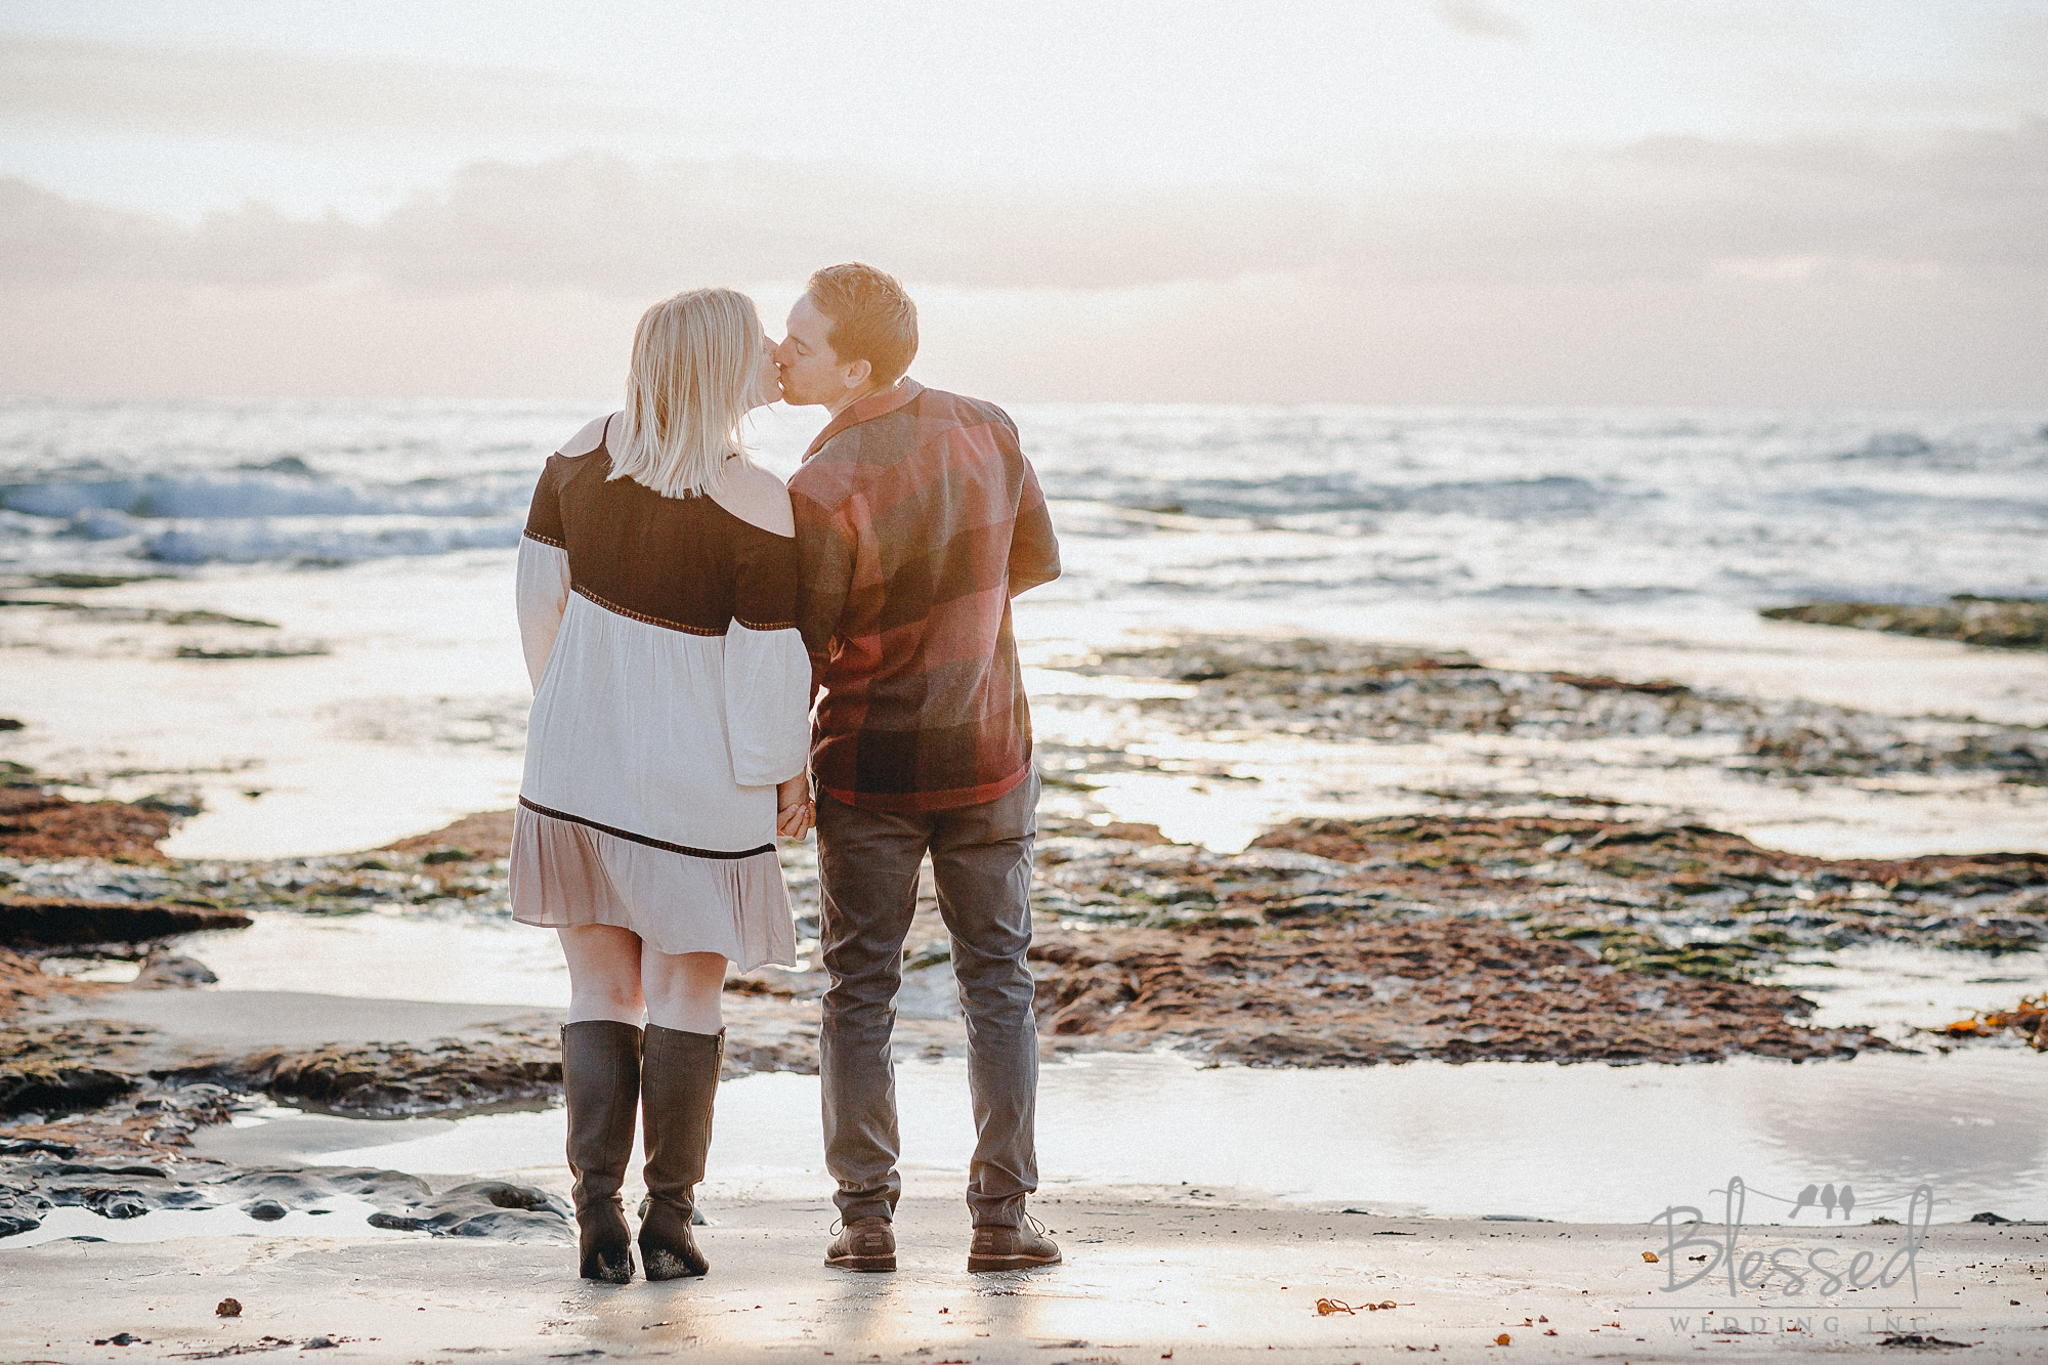 San Diego Engagement Session by San Diego Wedding Photographers Blessed Wedding-18.jpg